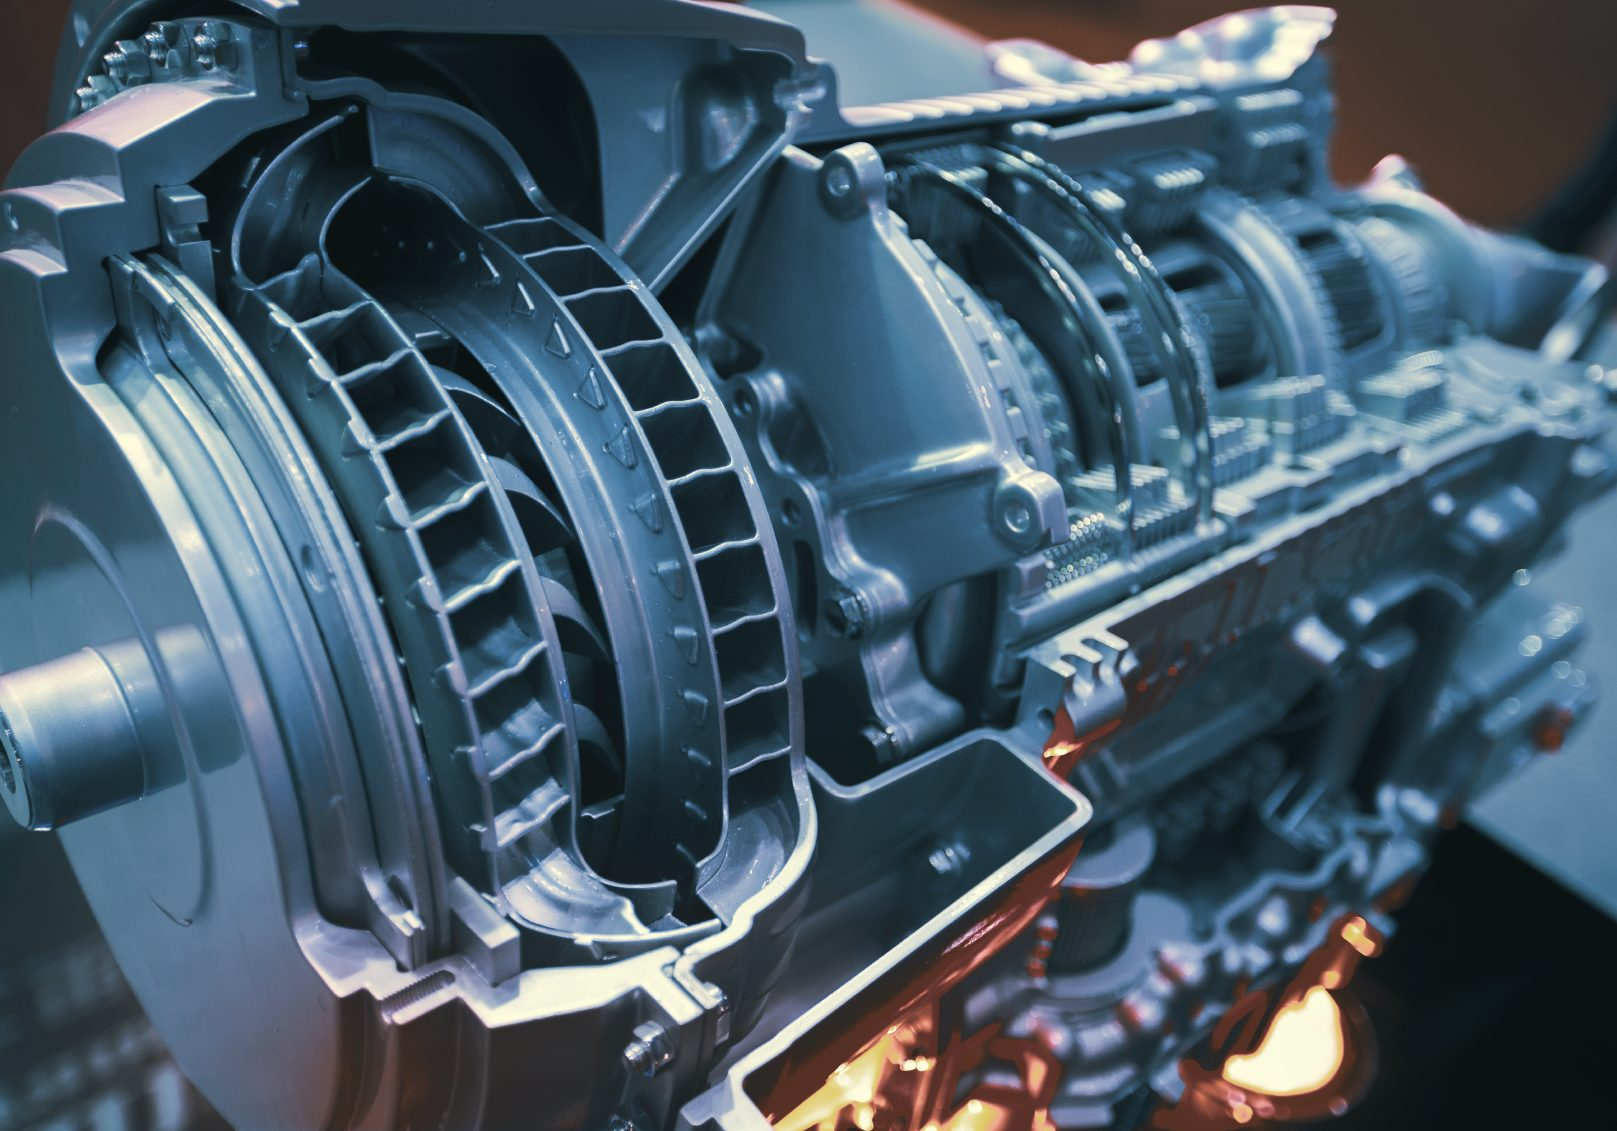 Image of a transmission that may be in need of a powertrain replacement